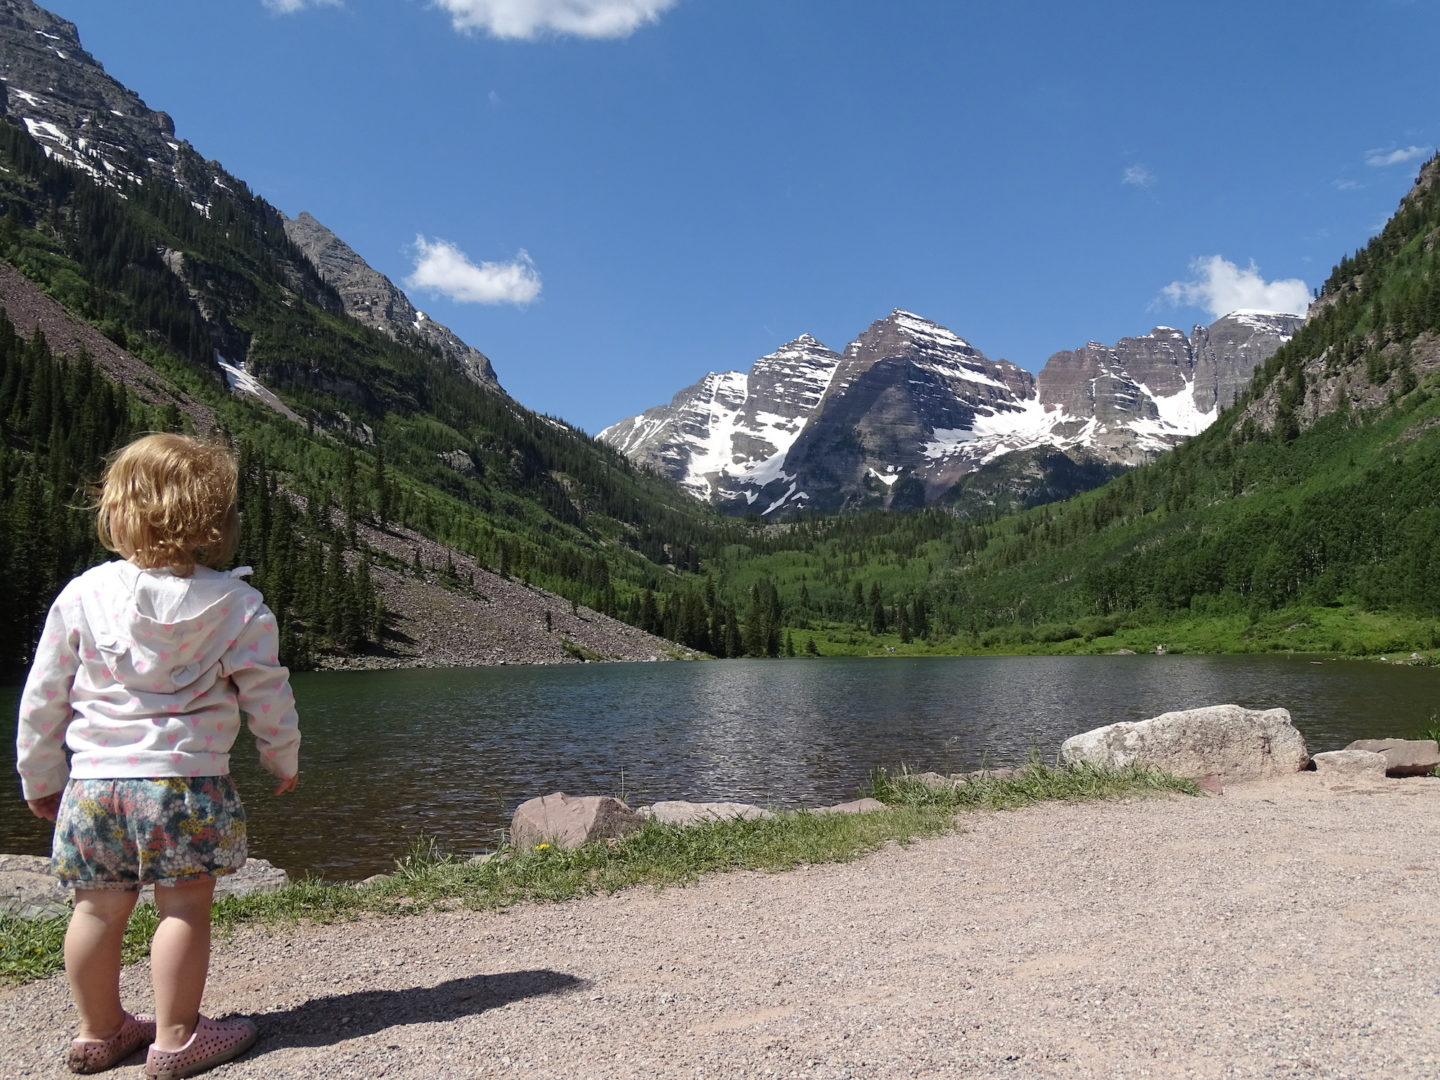 5 Hike Suggestions For Adventurous Families - Hike it Baby